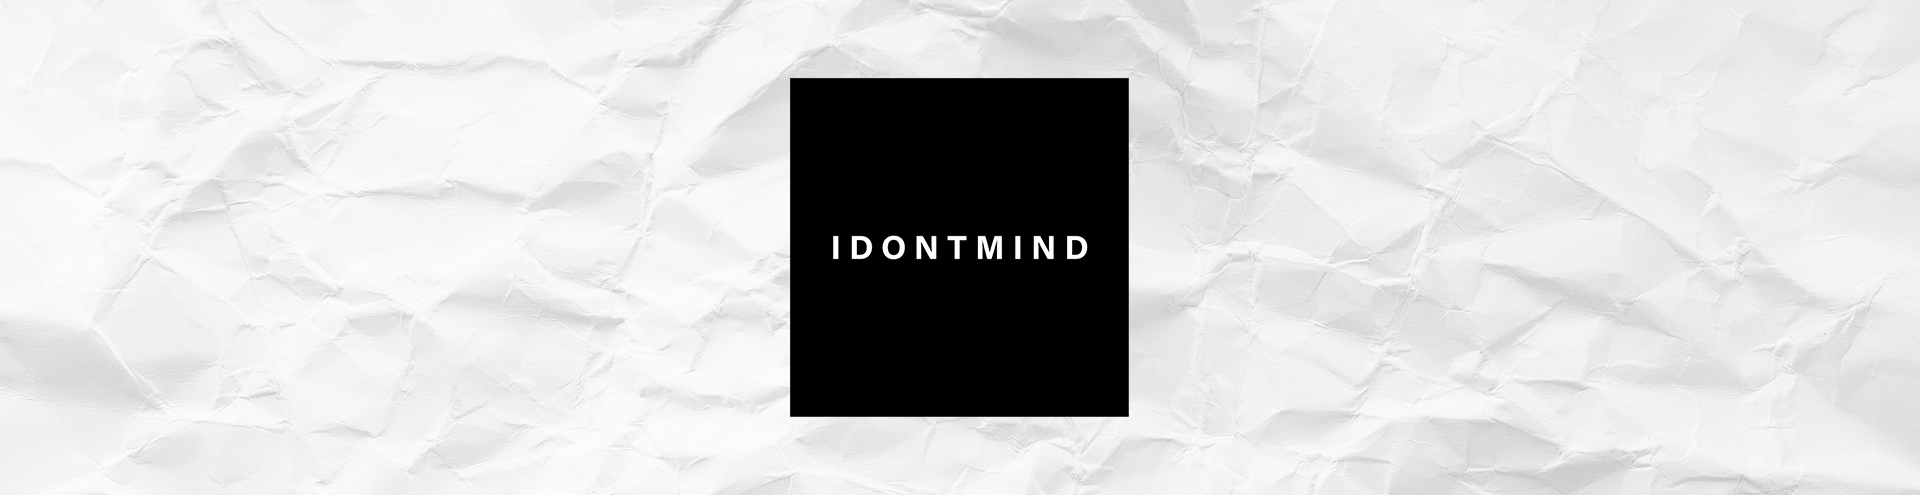 THE IDONTMIND STORE  Store